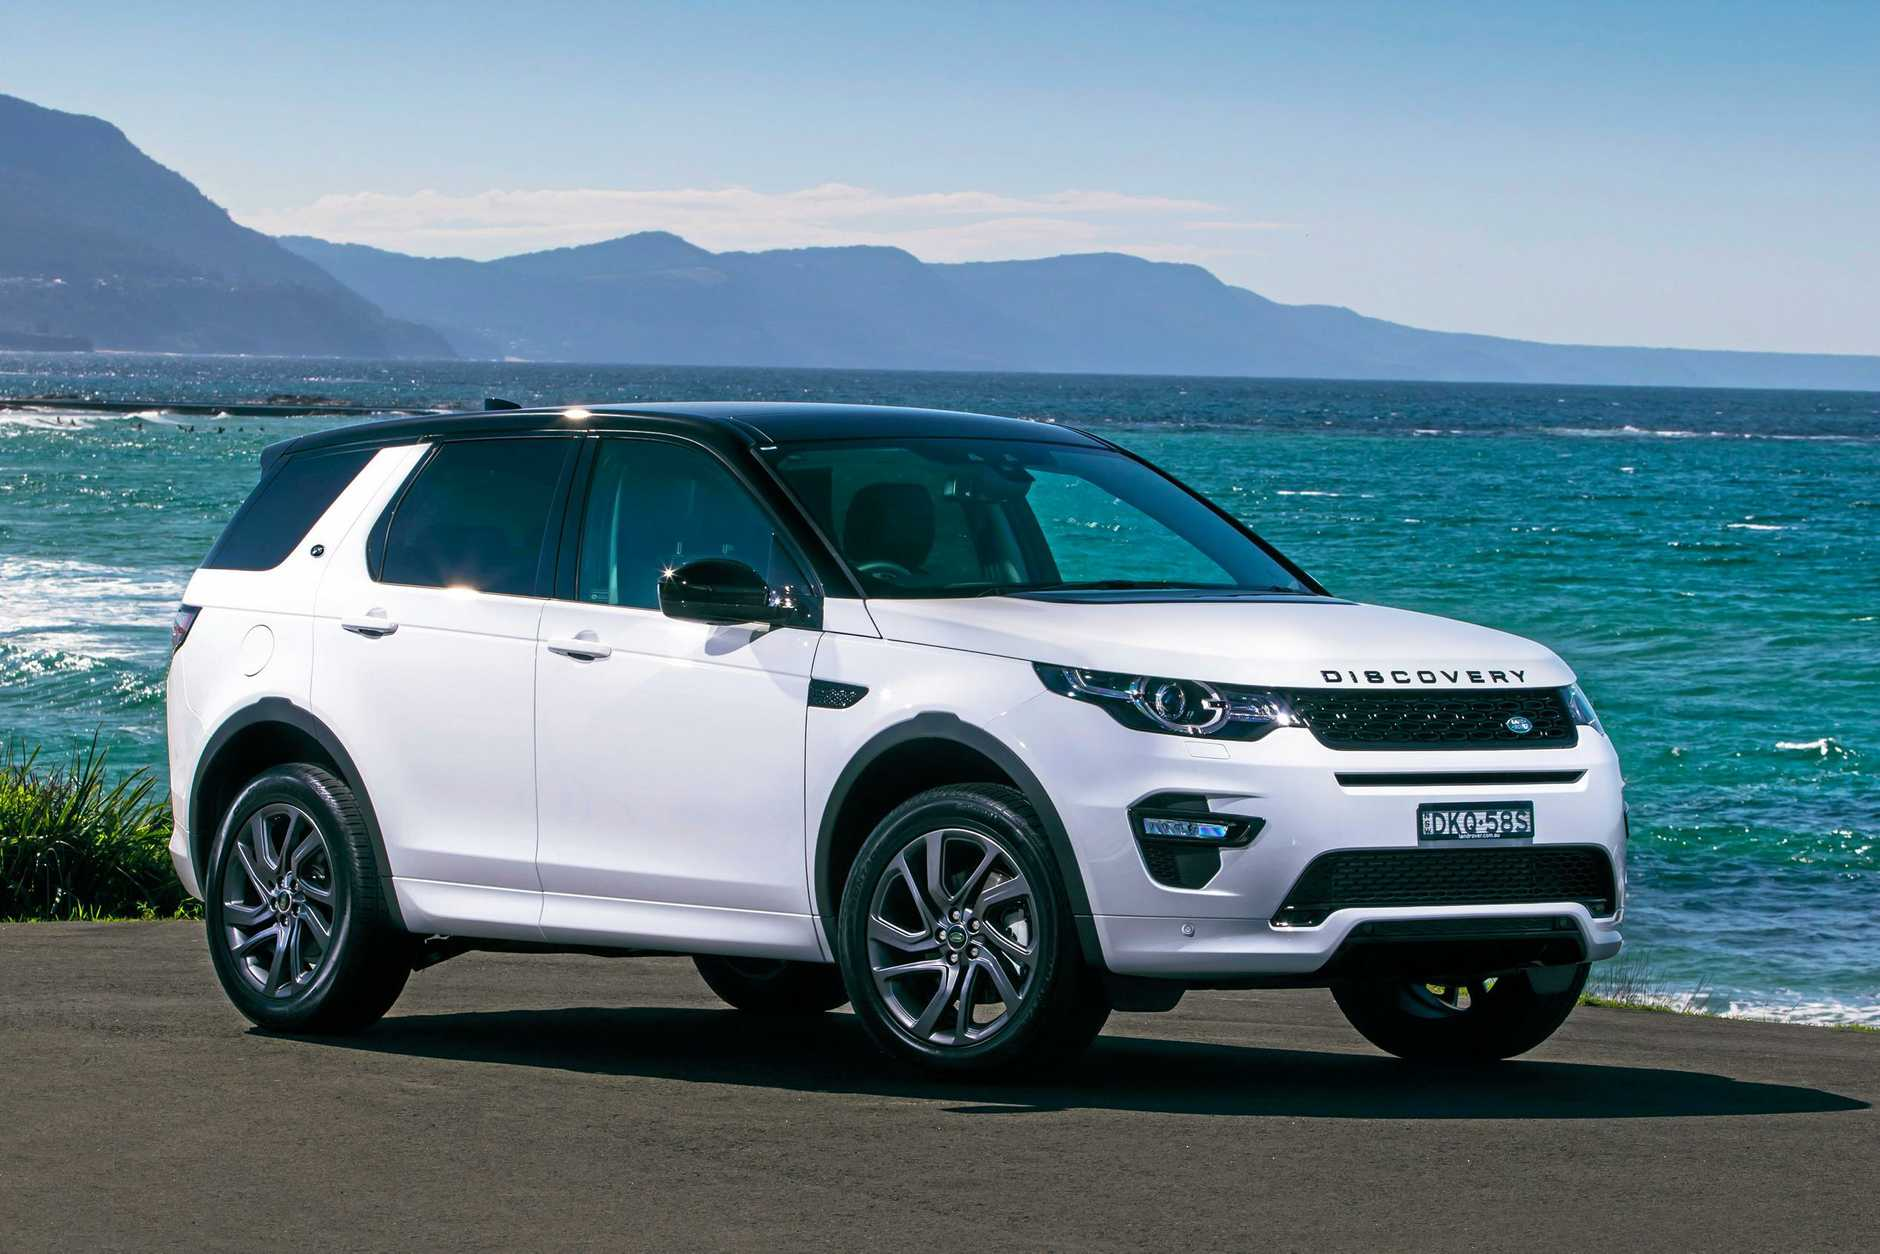 Range Rover Discovery Sport >> Land Rover Discovery Sport Is One Royally Cool Cat